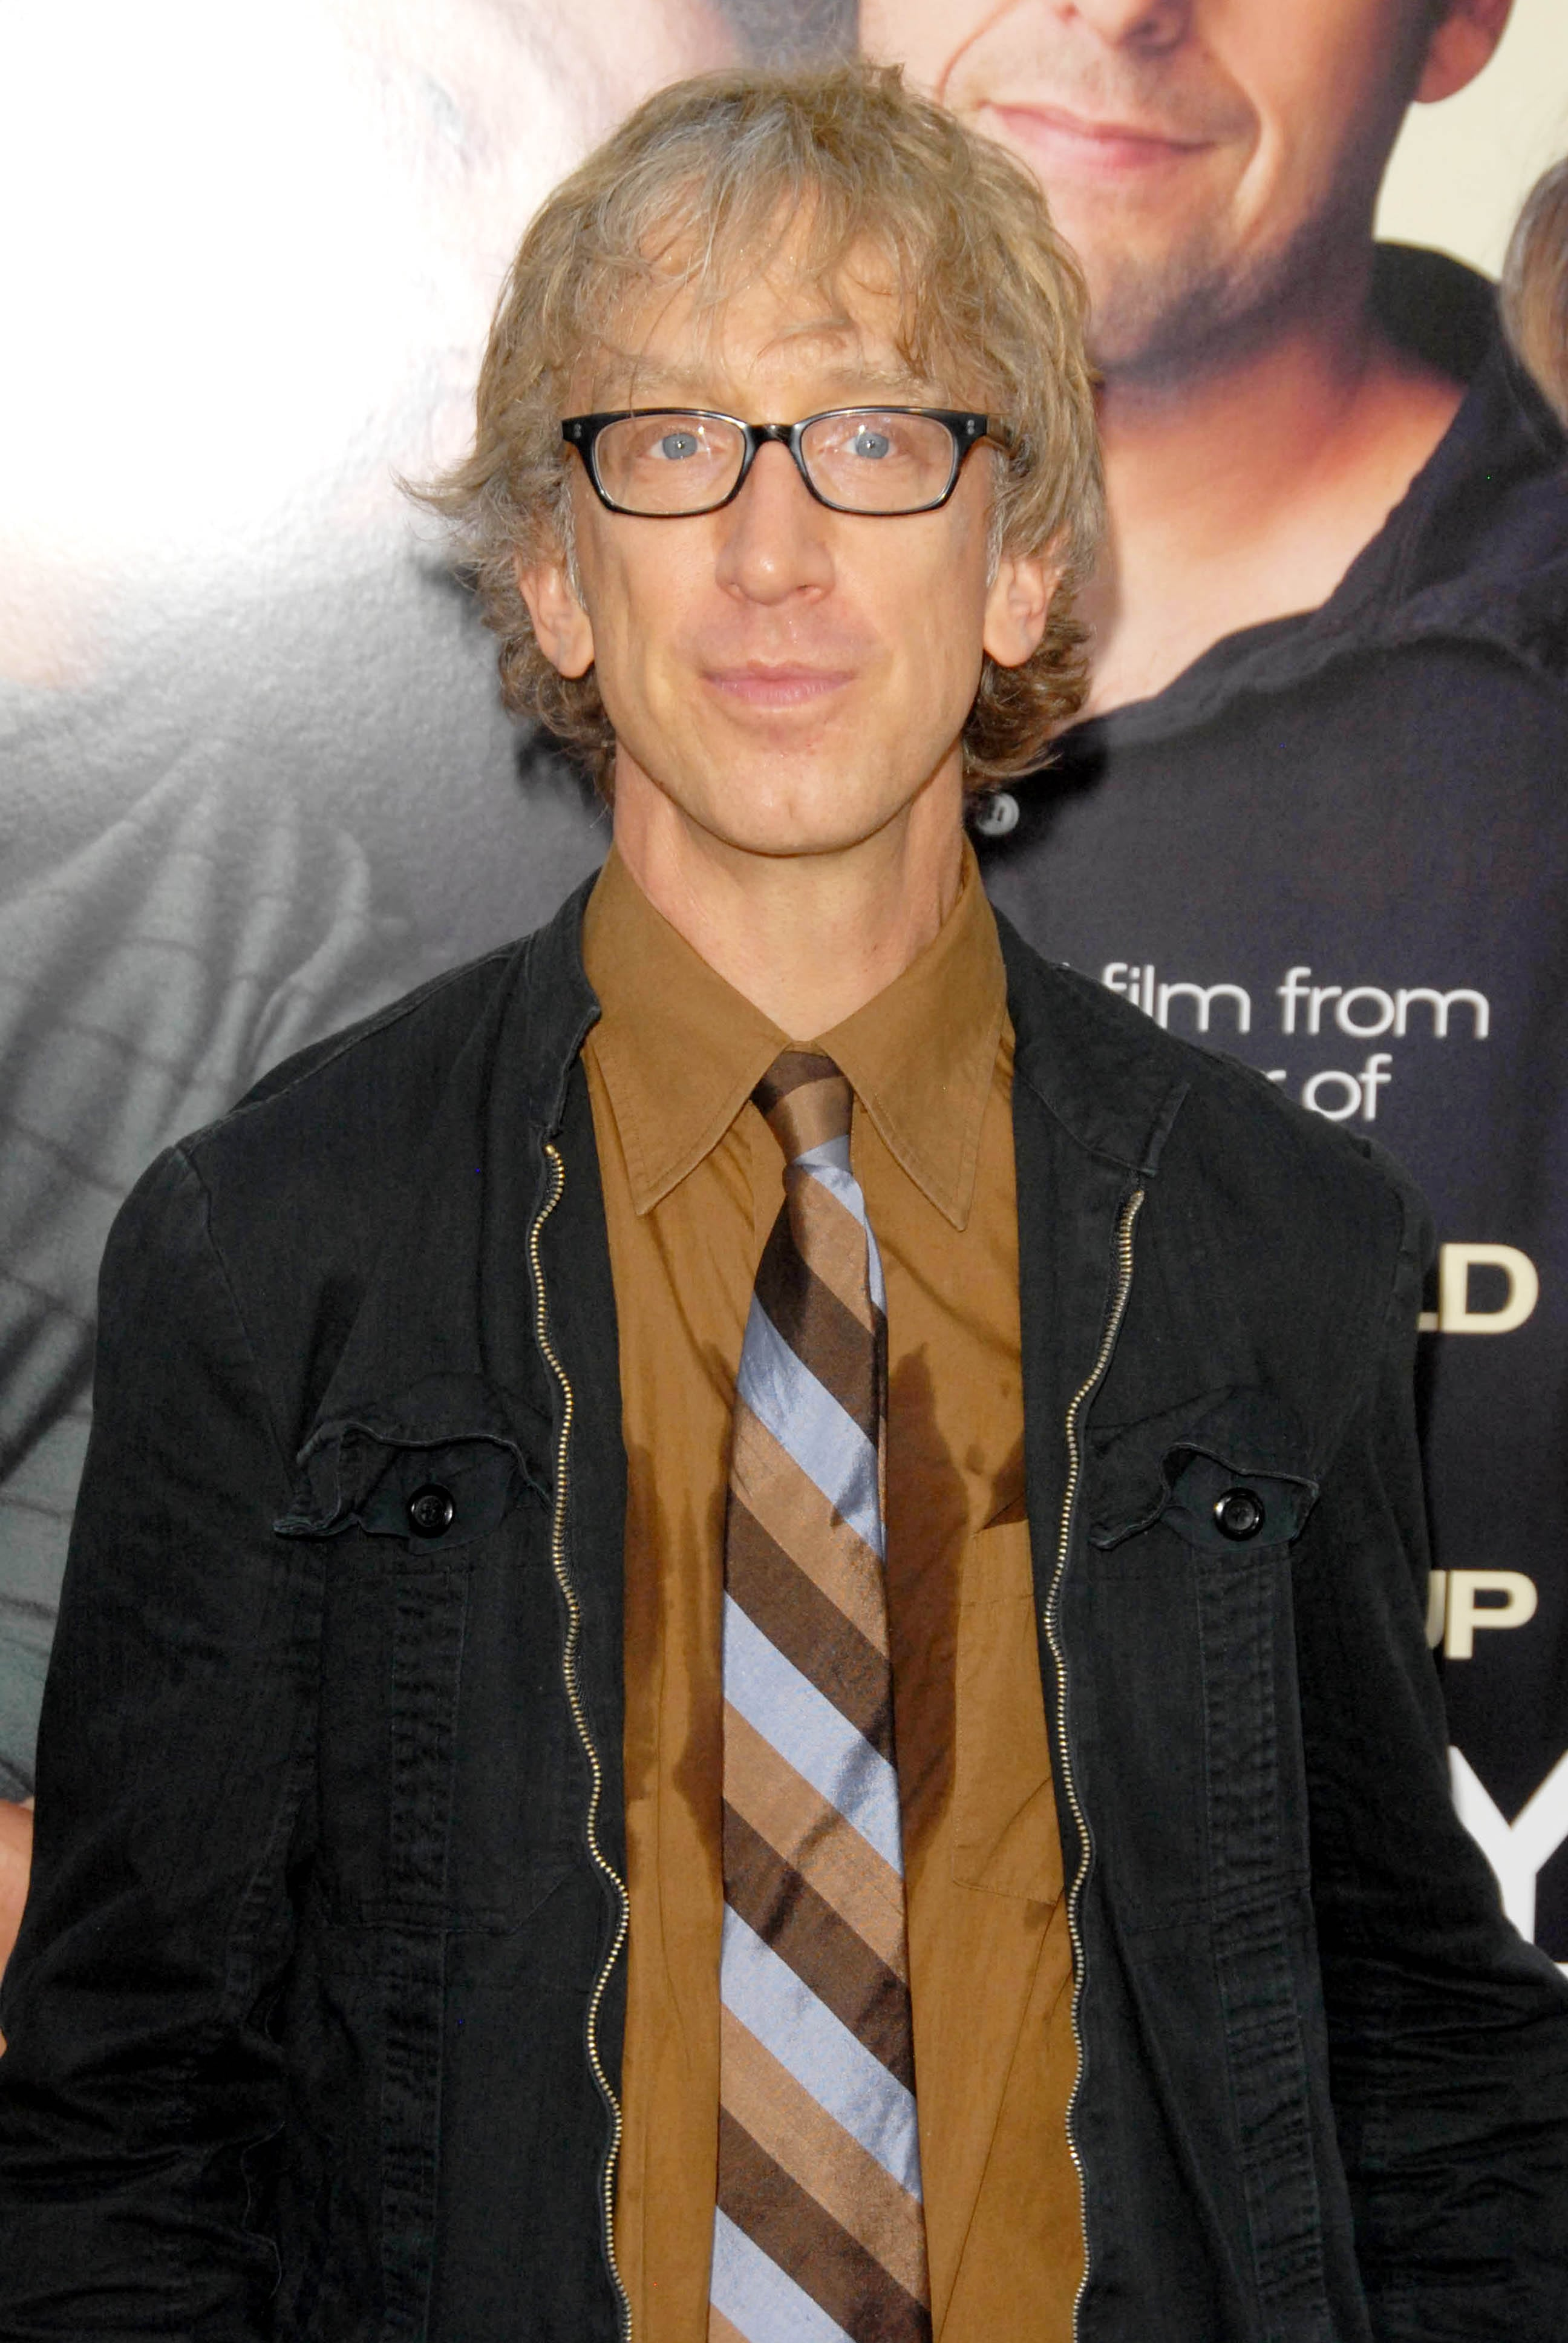 Andy Dick For mobile